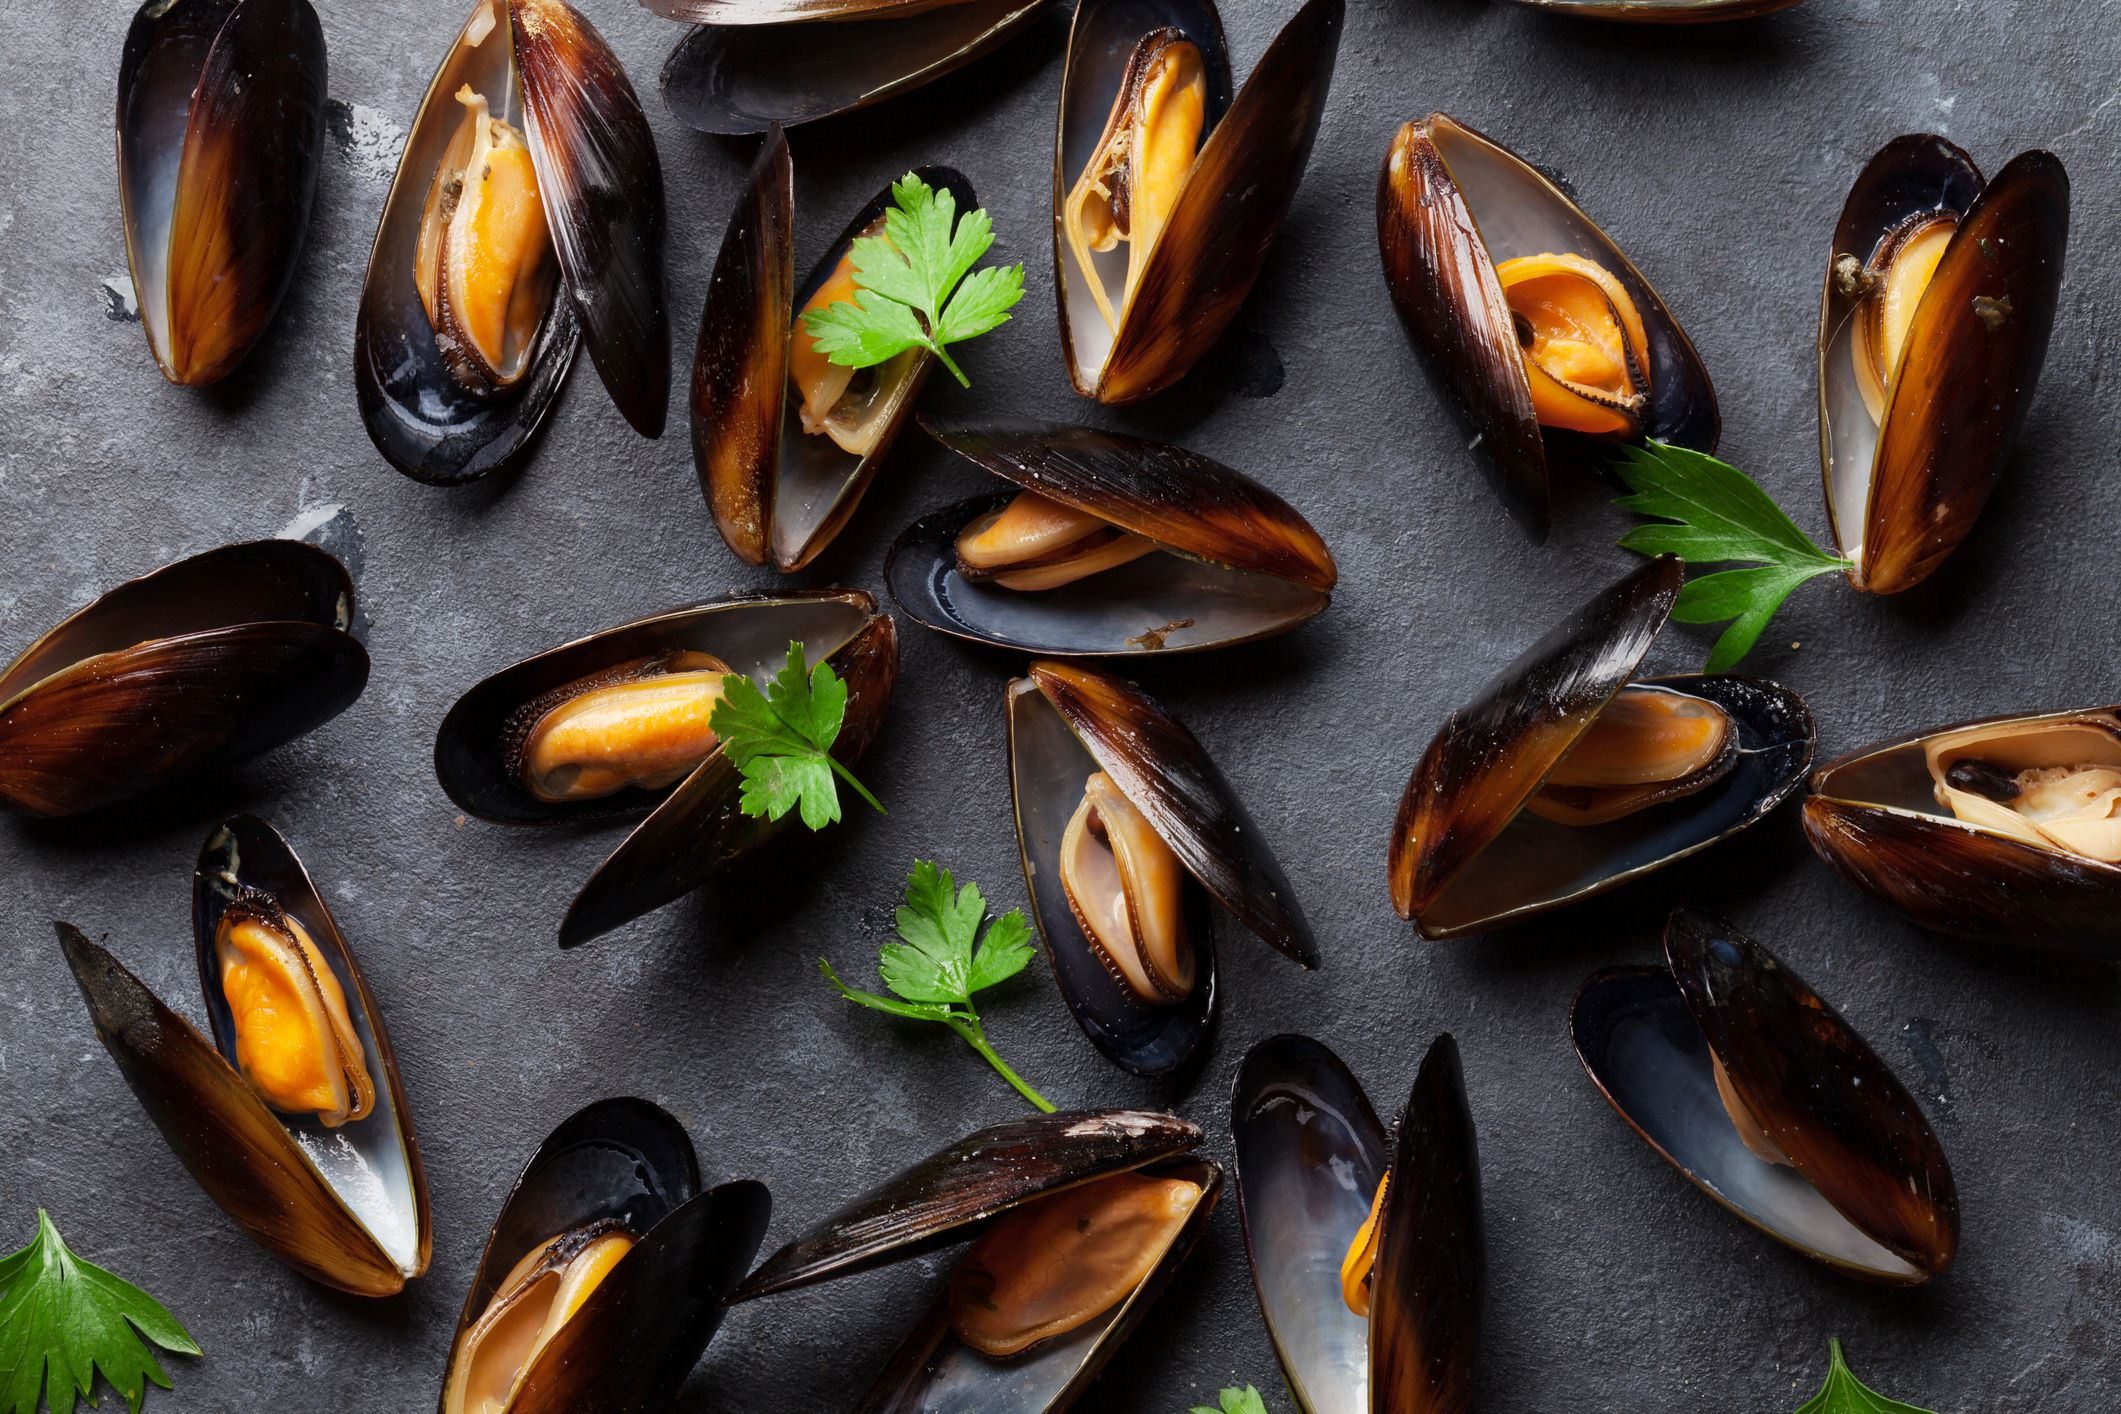 shell-fish-mussels-stock